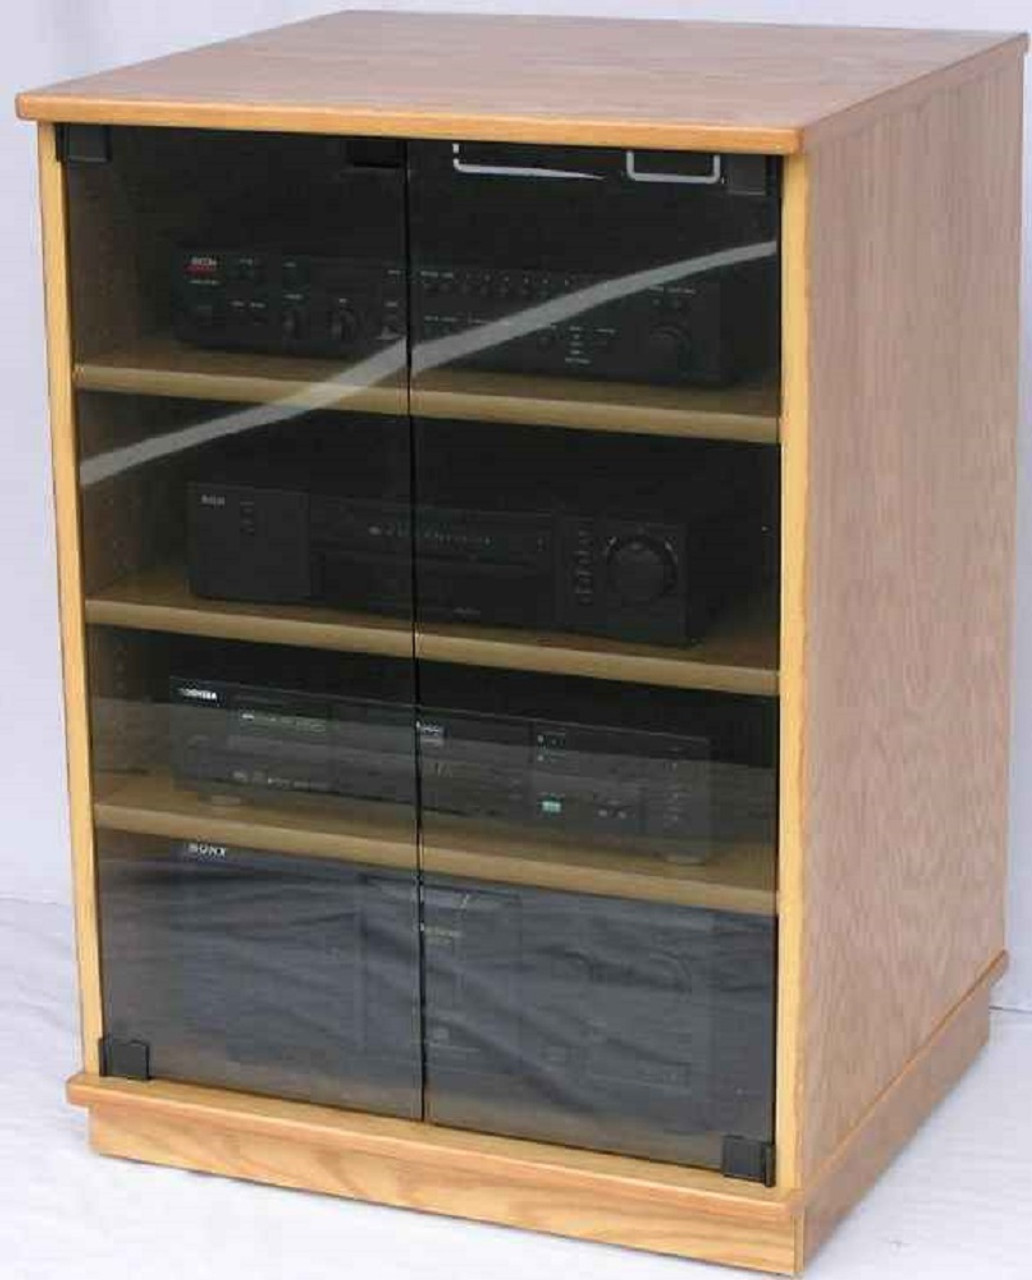 Stereo Cabinet Glass Door Bar Cabinet Tv Stands With Glass Doors 33 High  409 00 Narrow